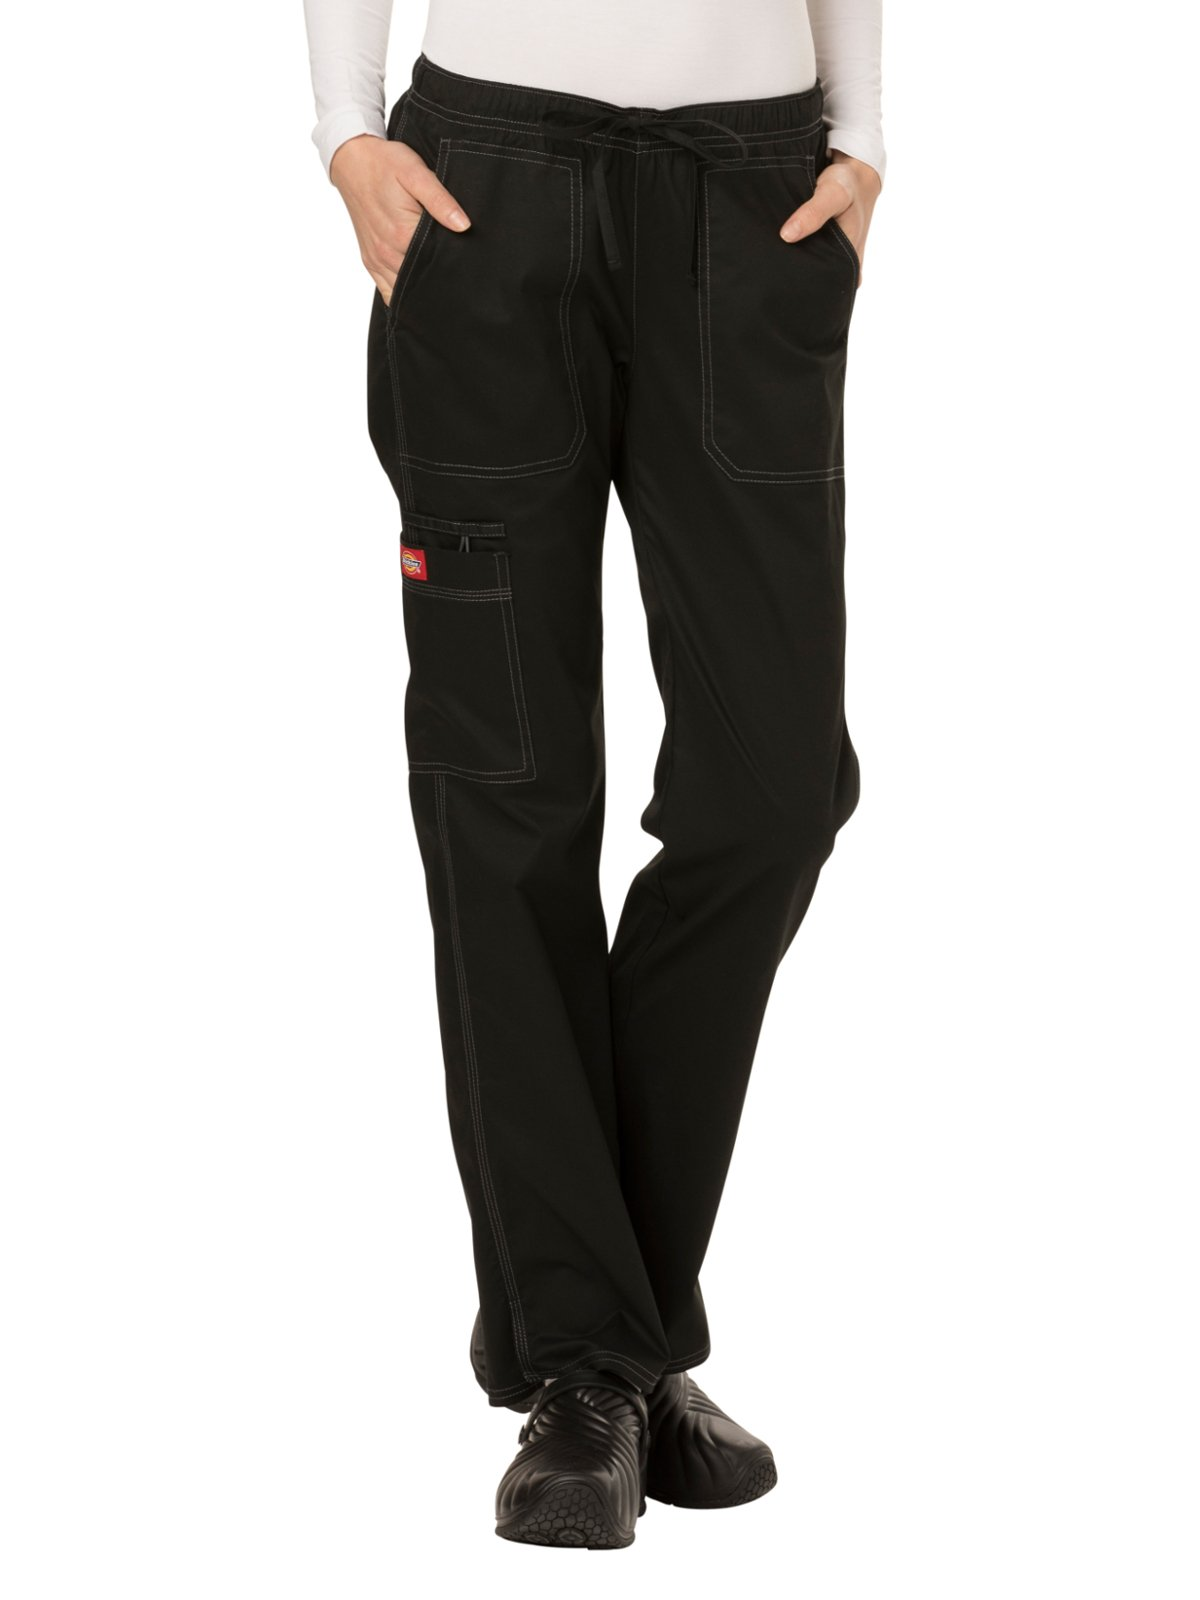 Dickies Gen Flex Women's Low Rise Straight Leg Scrub Pant Large Black